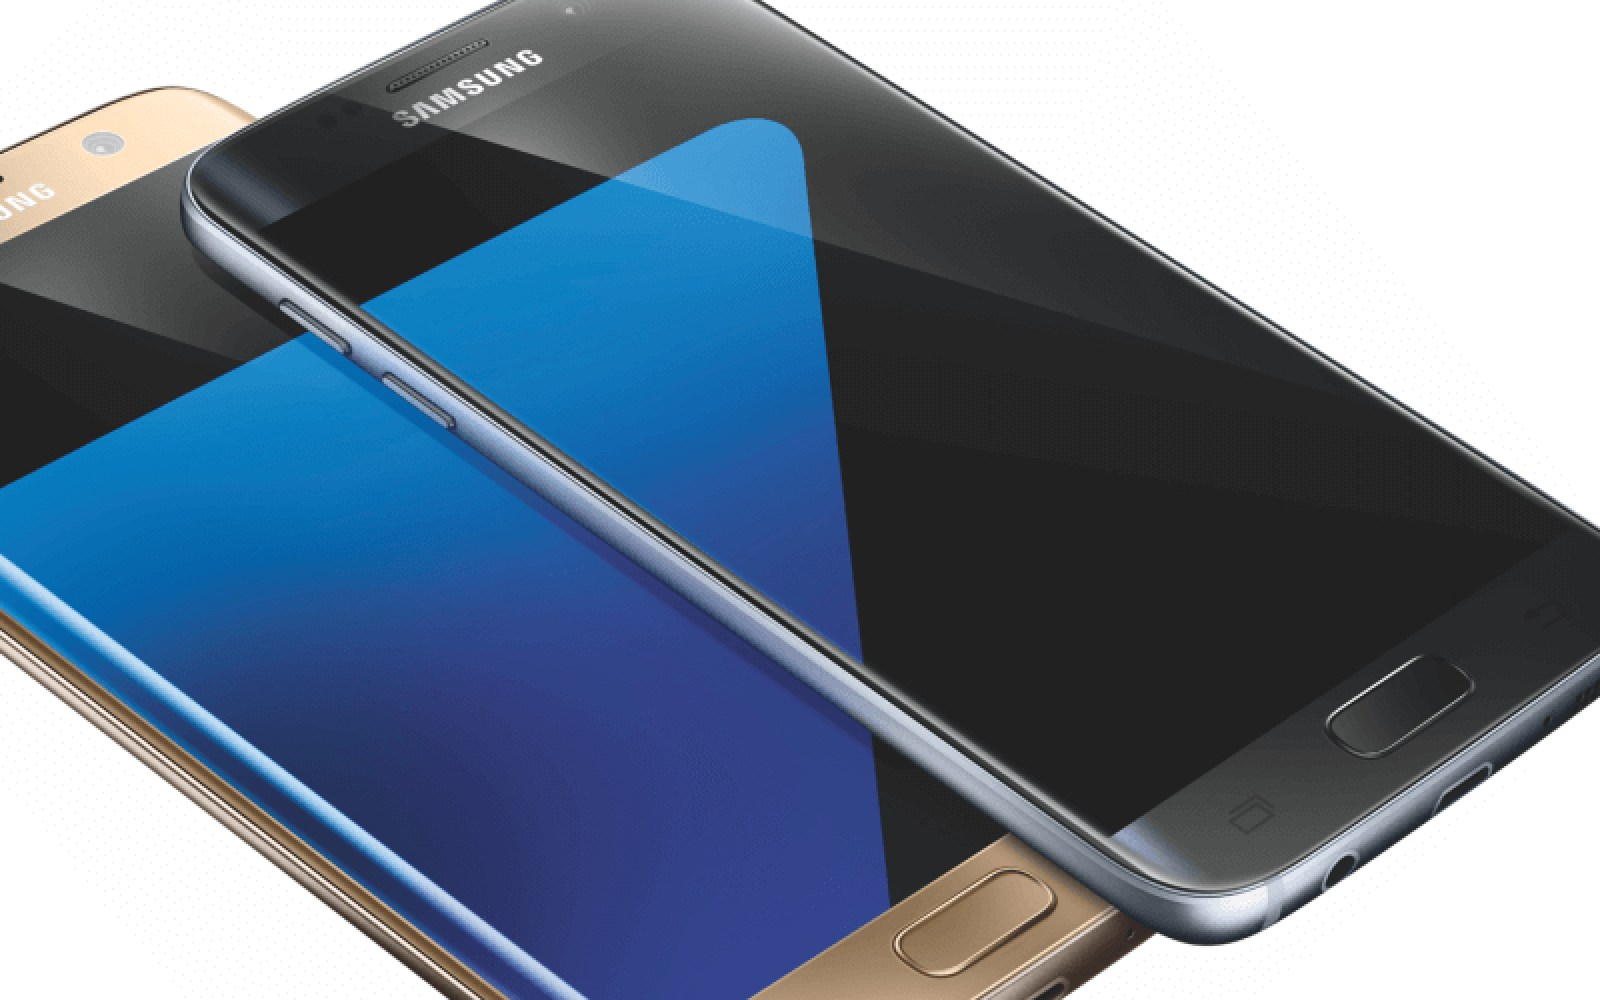 Samsung's Nougat beta test for the Galaxy S7 kicks off Nov 9 in the US, UK, China, & South Korea